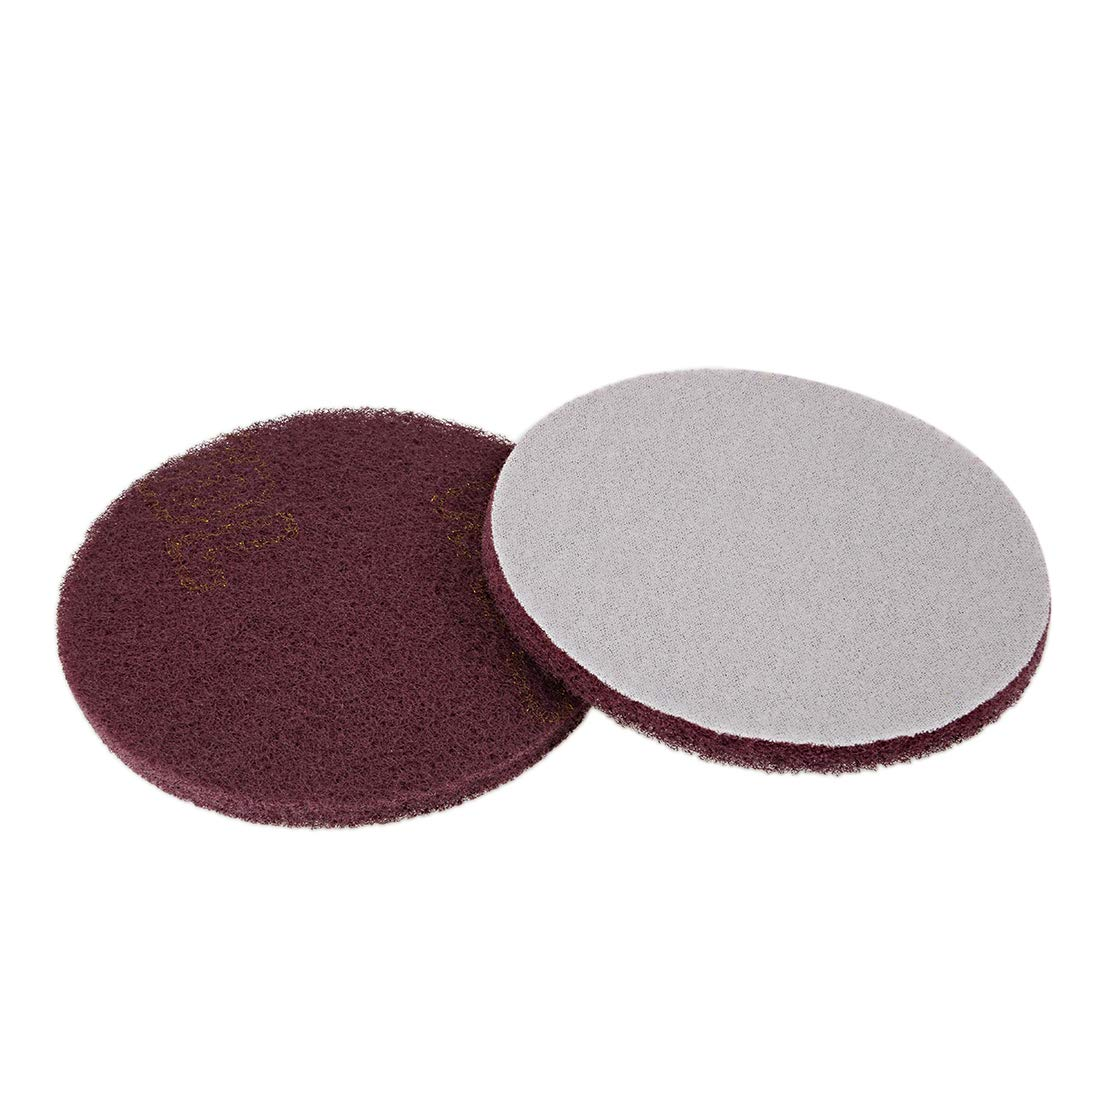 sourcing map 7 Inch Scrubber Scouring Pads 1000-Grits Drill Scuffing Disc Hoop and Loop Surface Conditioning Disc 6pcs